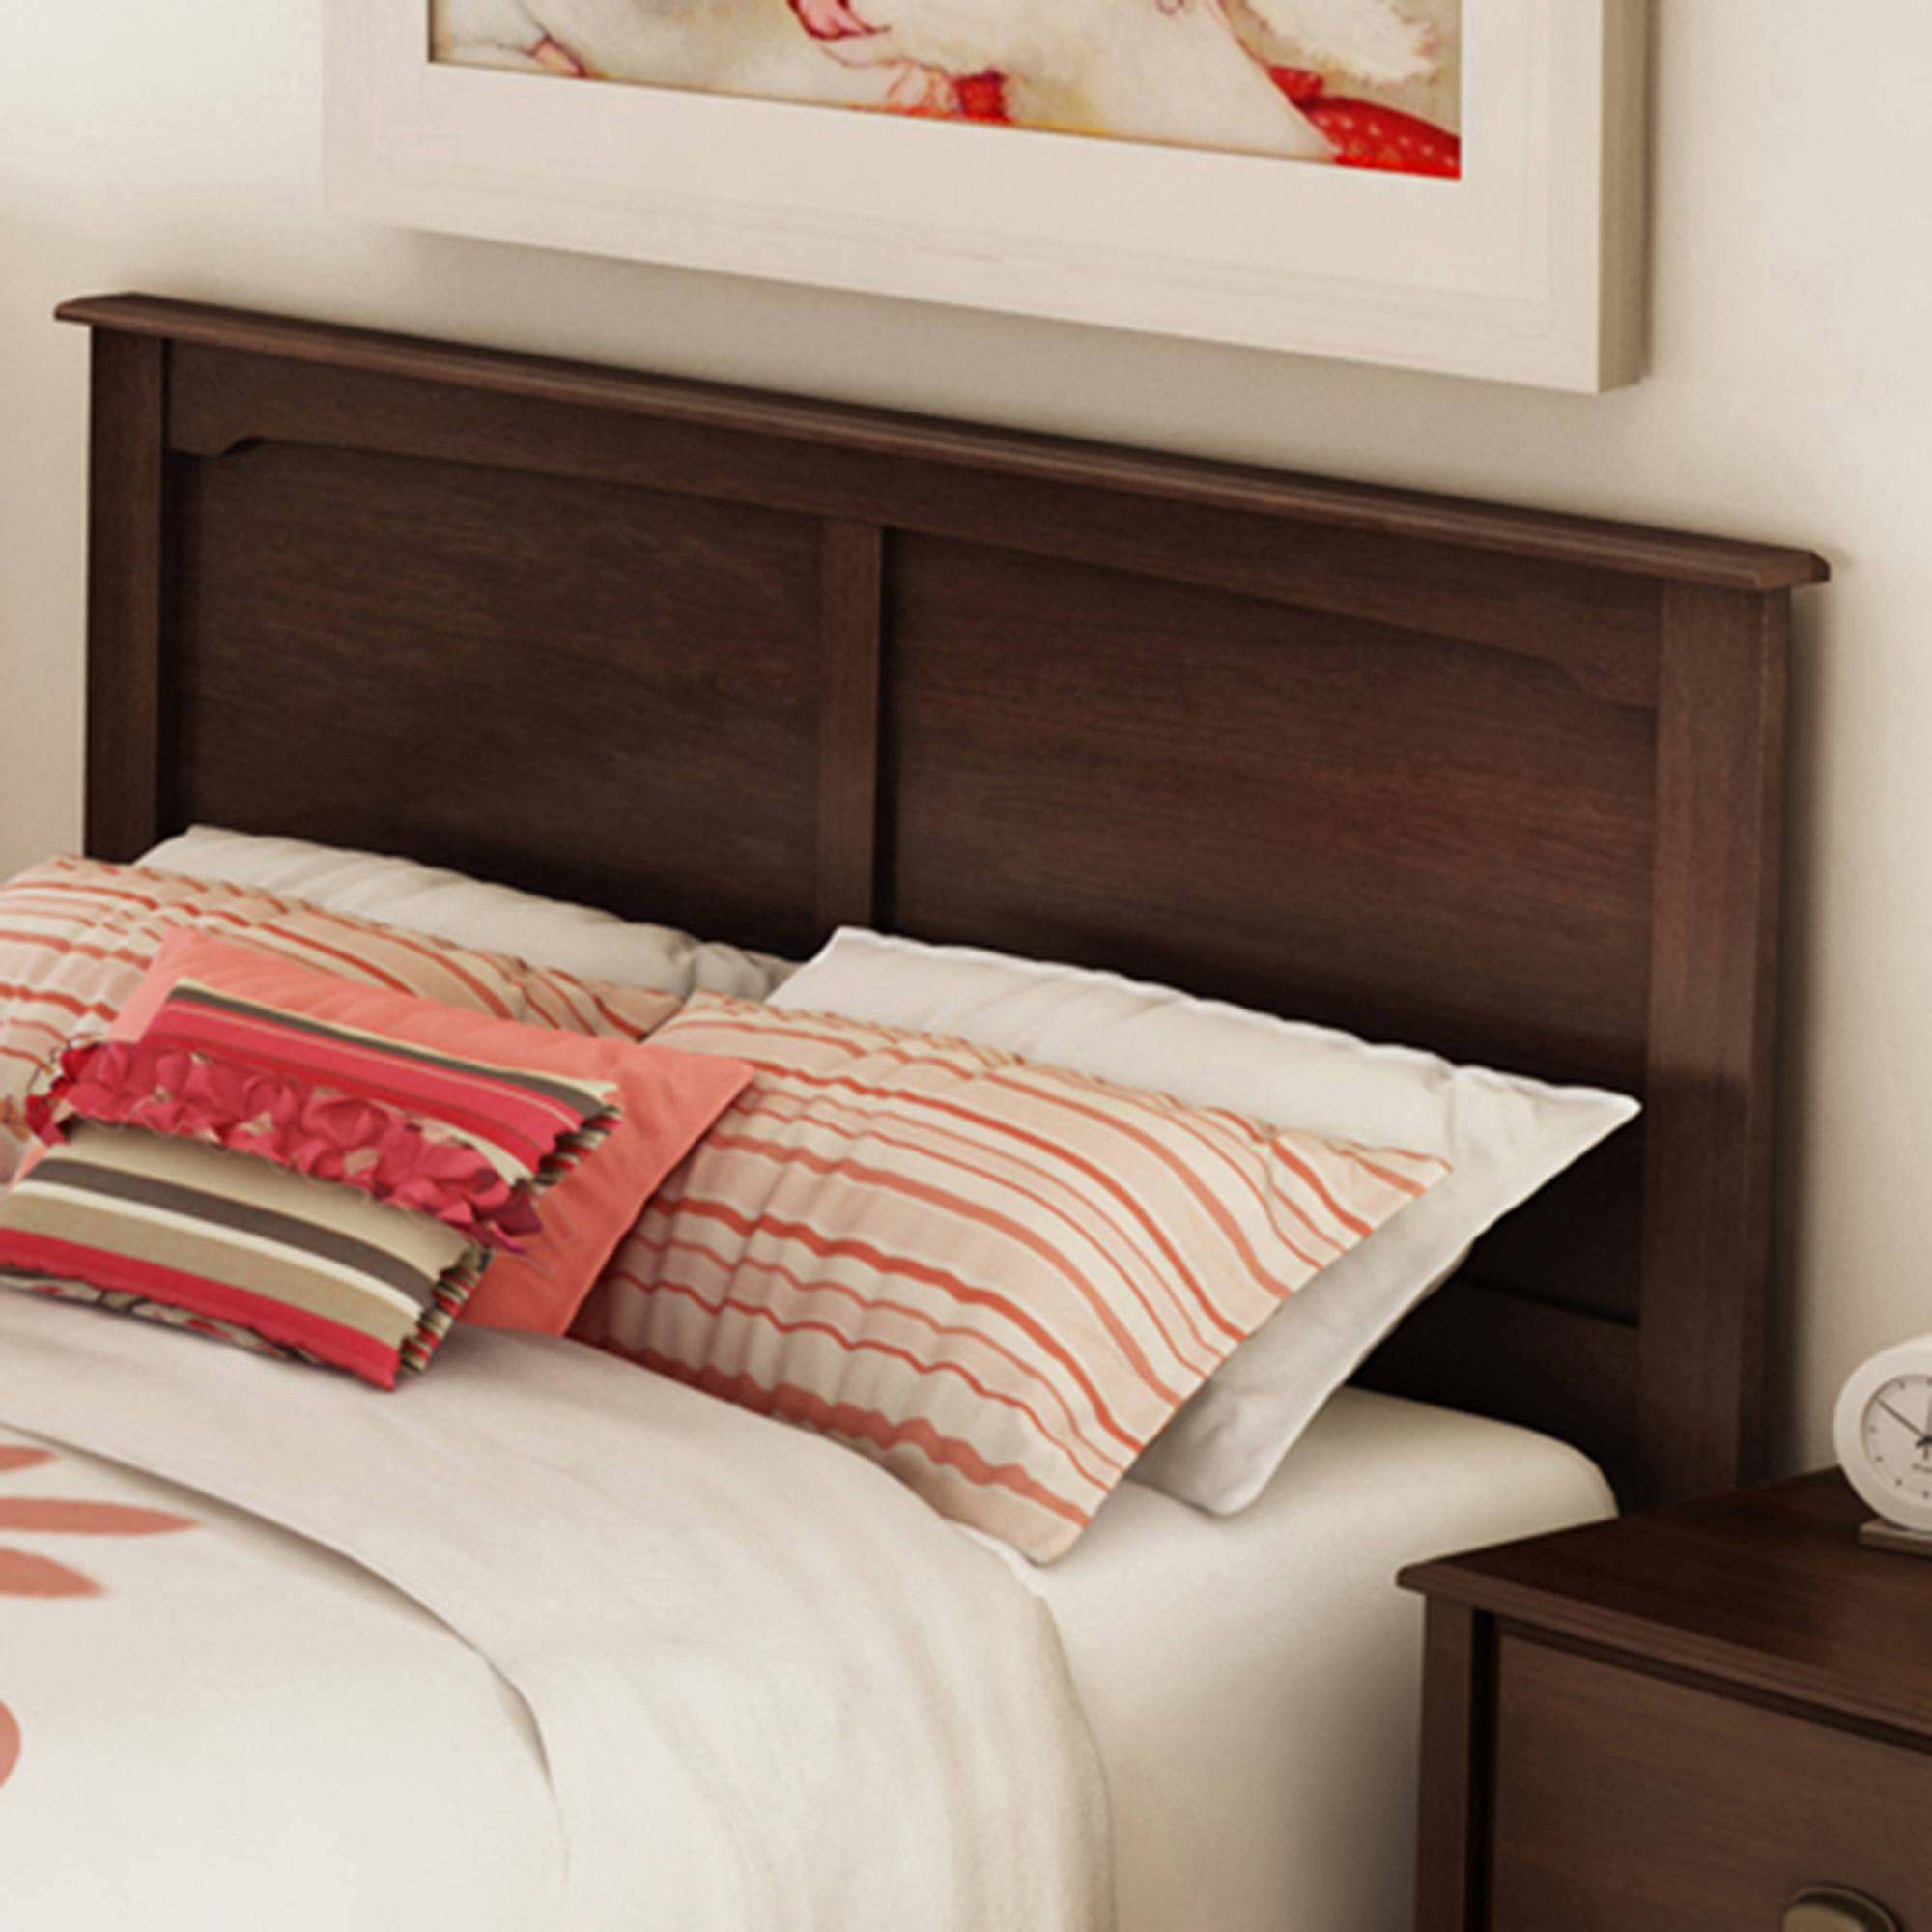 South Shore Willow Full Headboard, 54'', Multiple Finishes